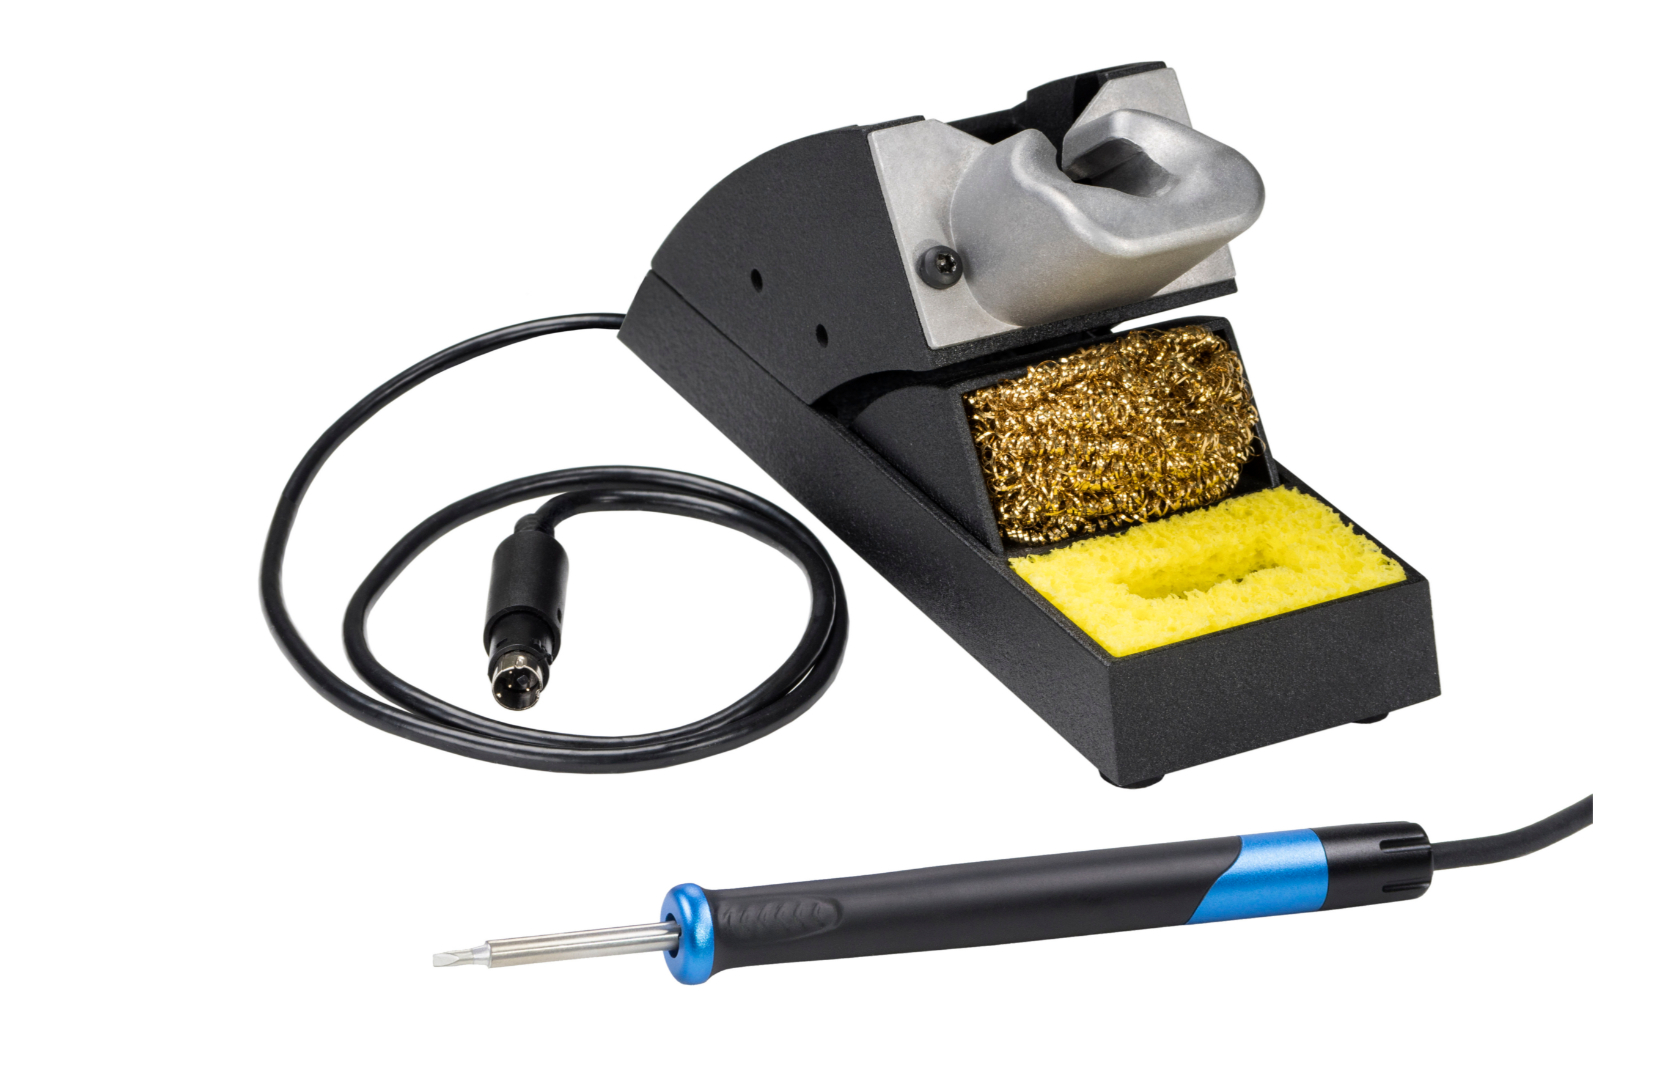 TD-200 AccuDrive™ Tip-Heater Cartridge Iron with Instant SetBack Tool Stand